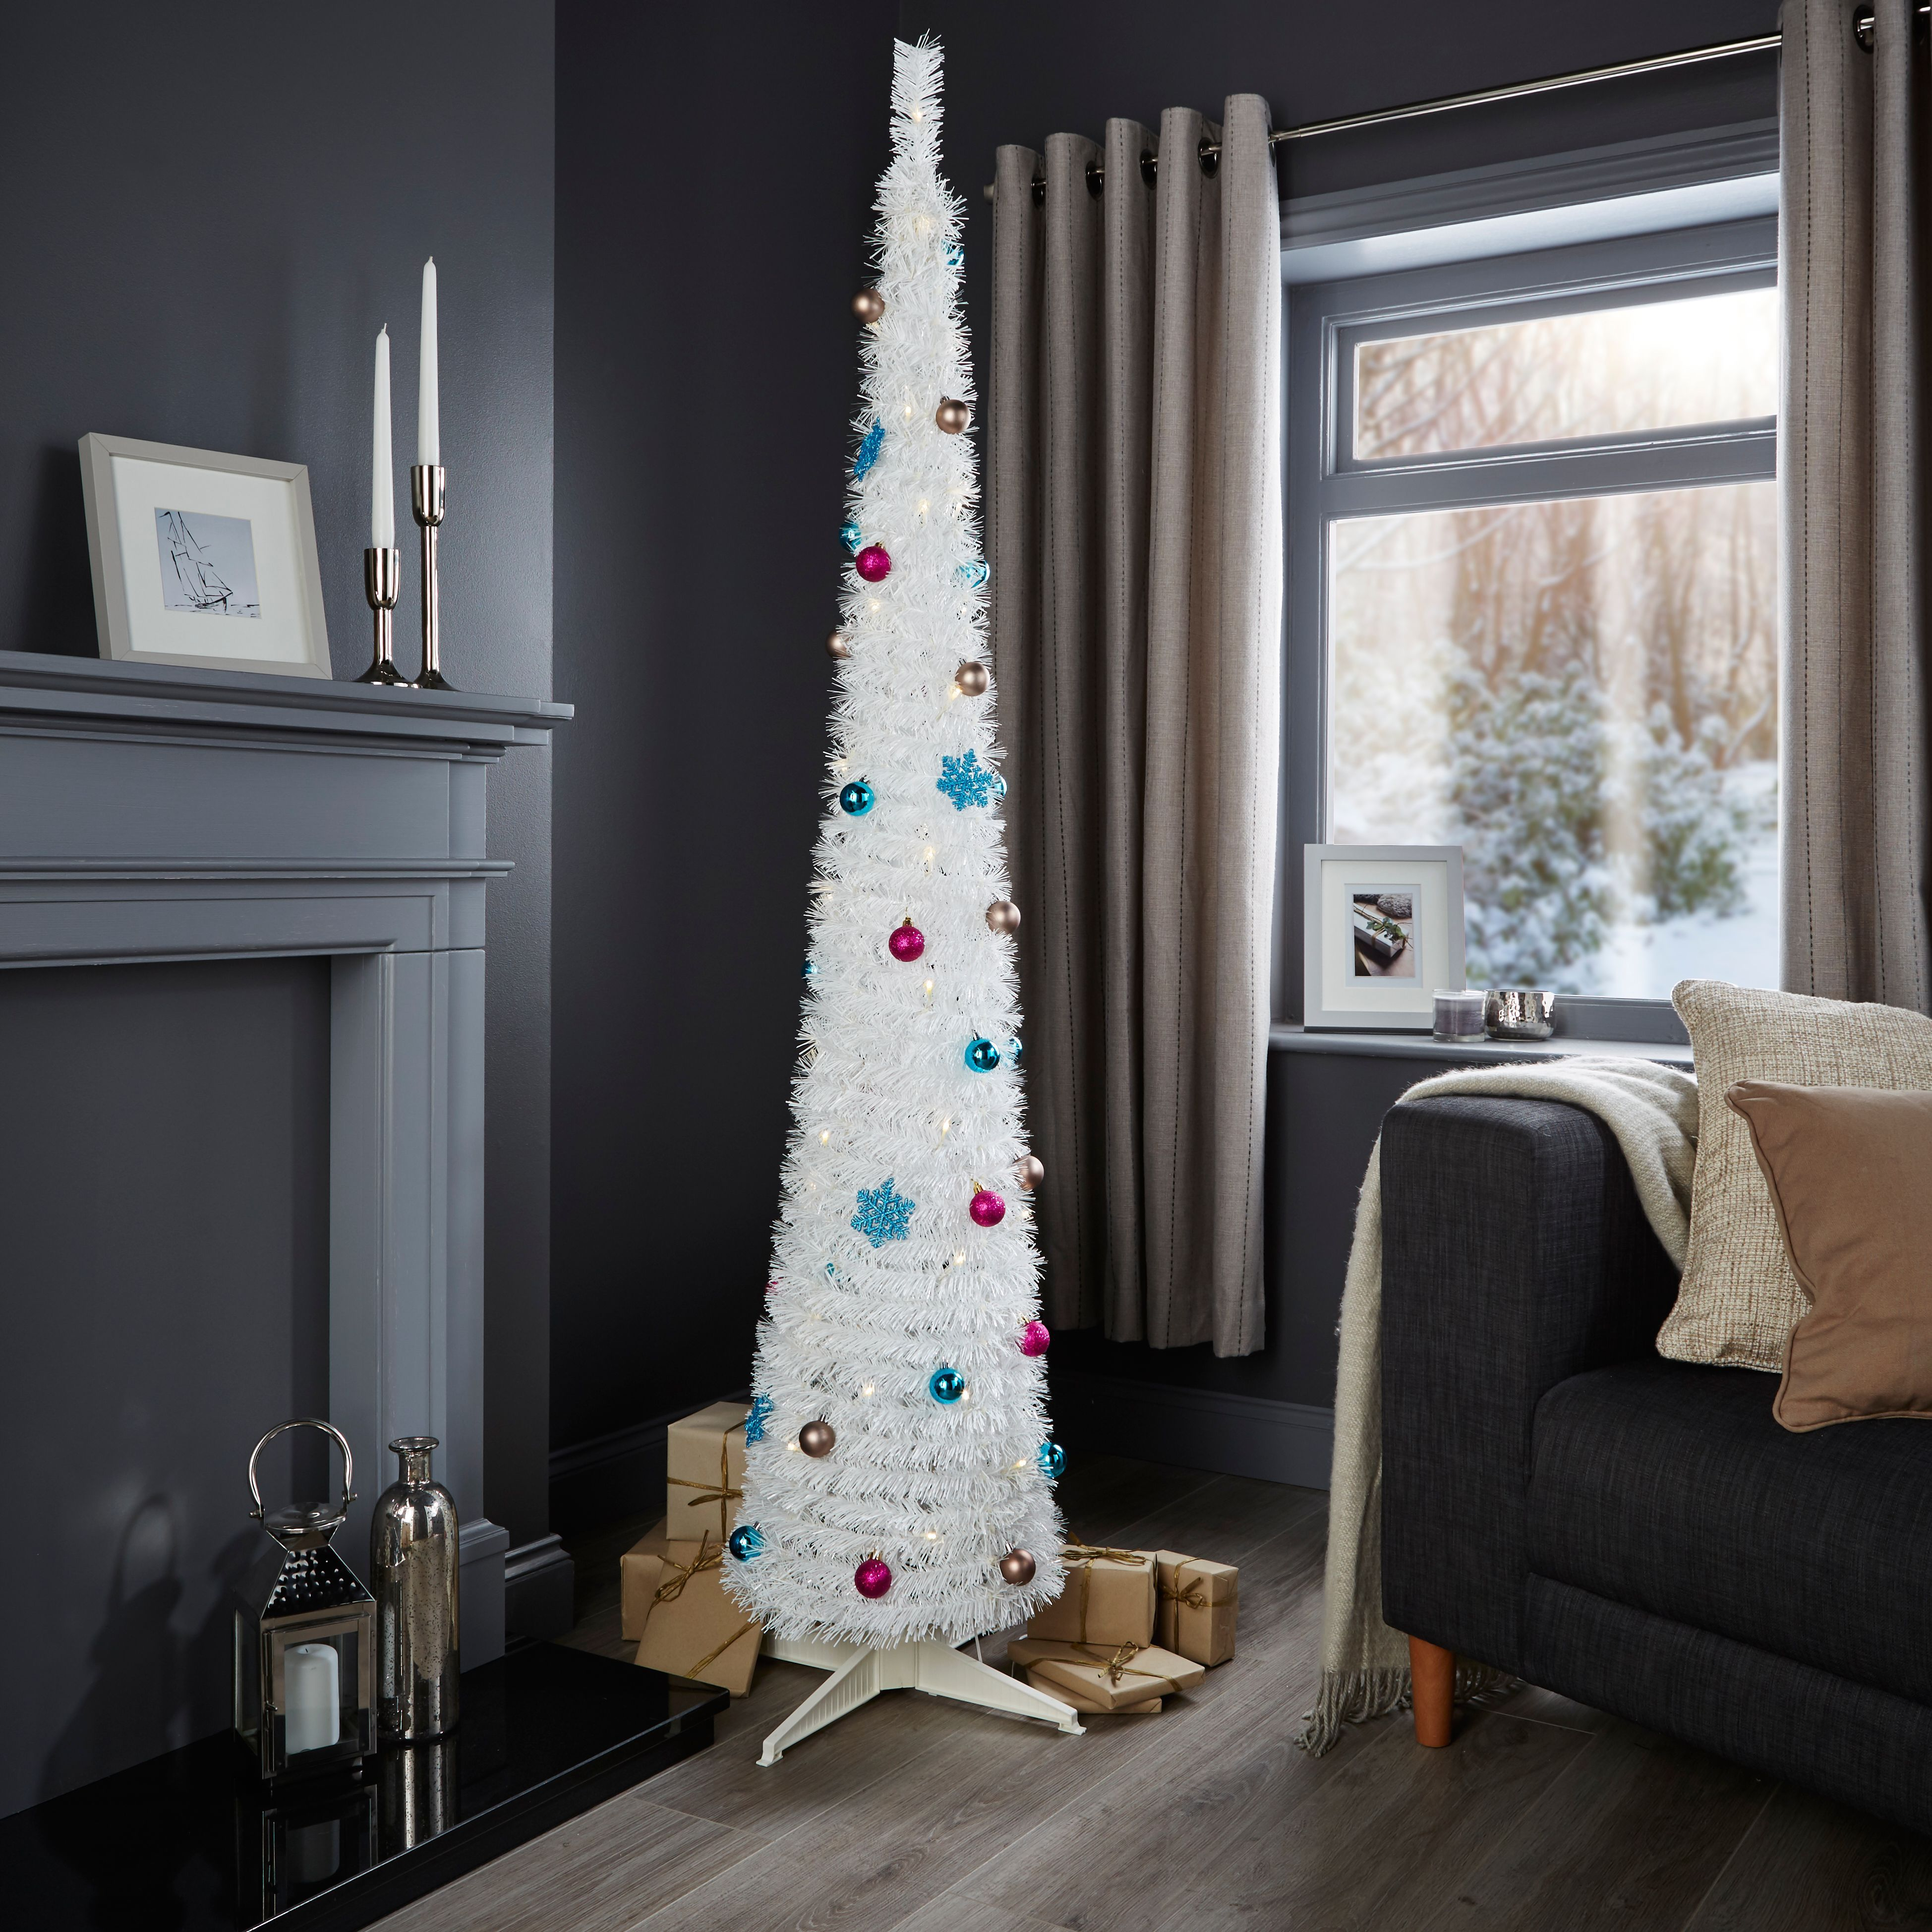 Pop Up Christmas Trees With Lights: 6ft Pop Up White Pre-lit & Pre Decorated Christmas Tree